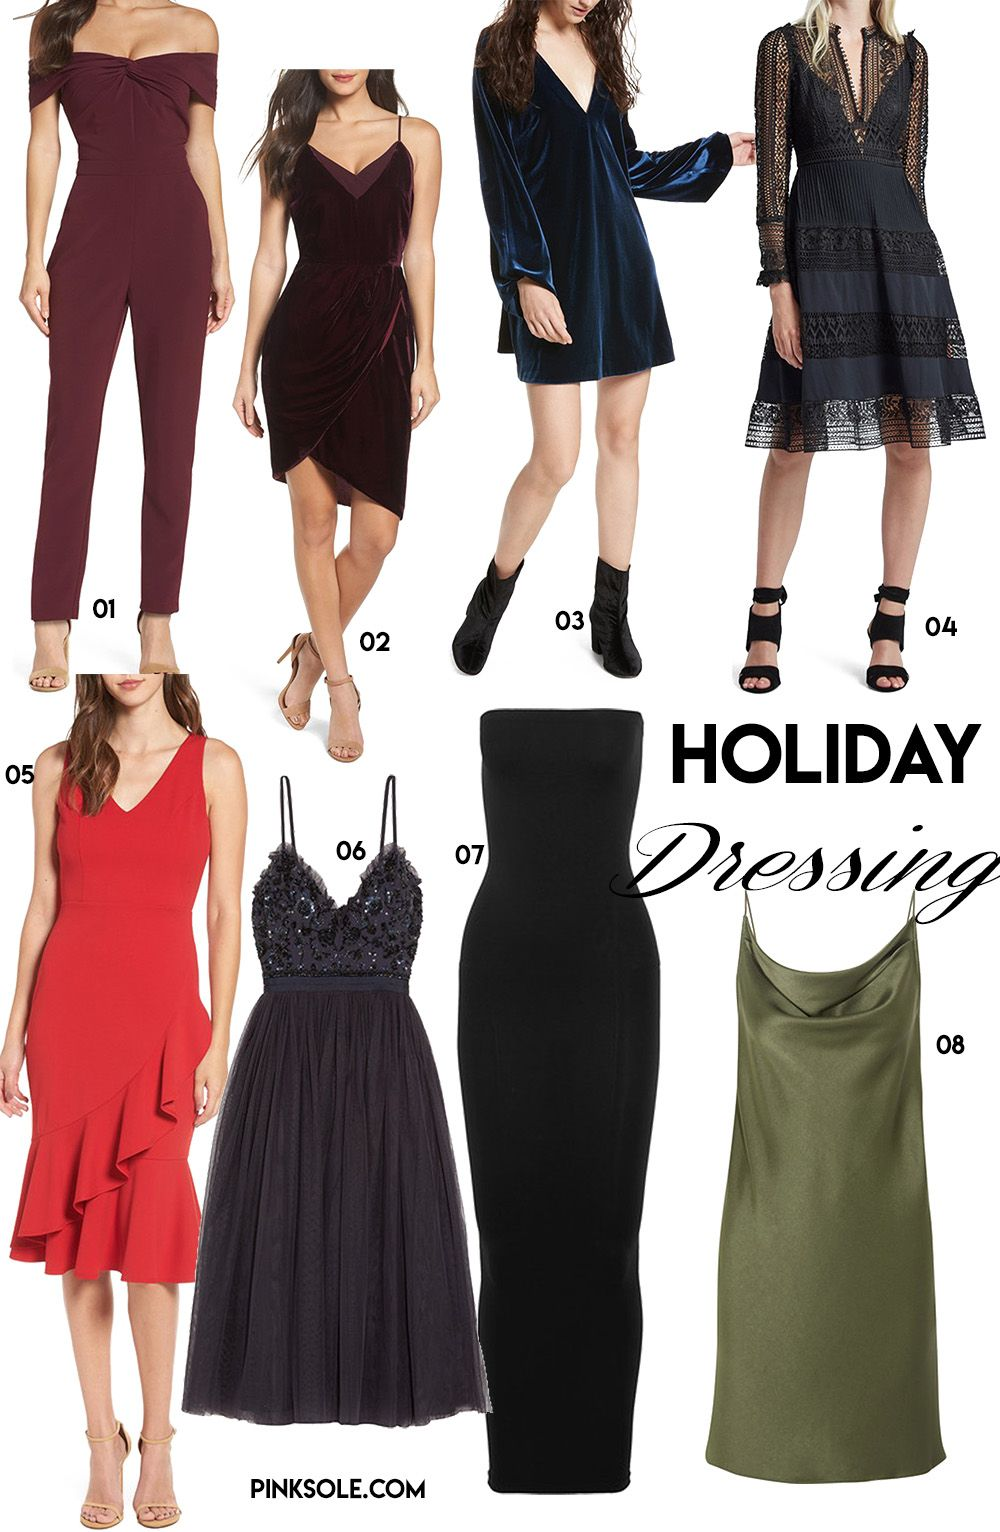 Lovely Cocktail Party Outfit Ideas Part - 7: Holiday Party Dresses Christmas New Yearu0027s Eve Outfit Ideas